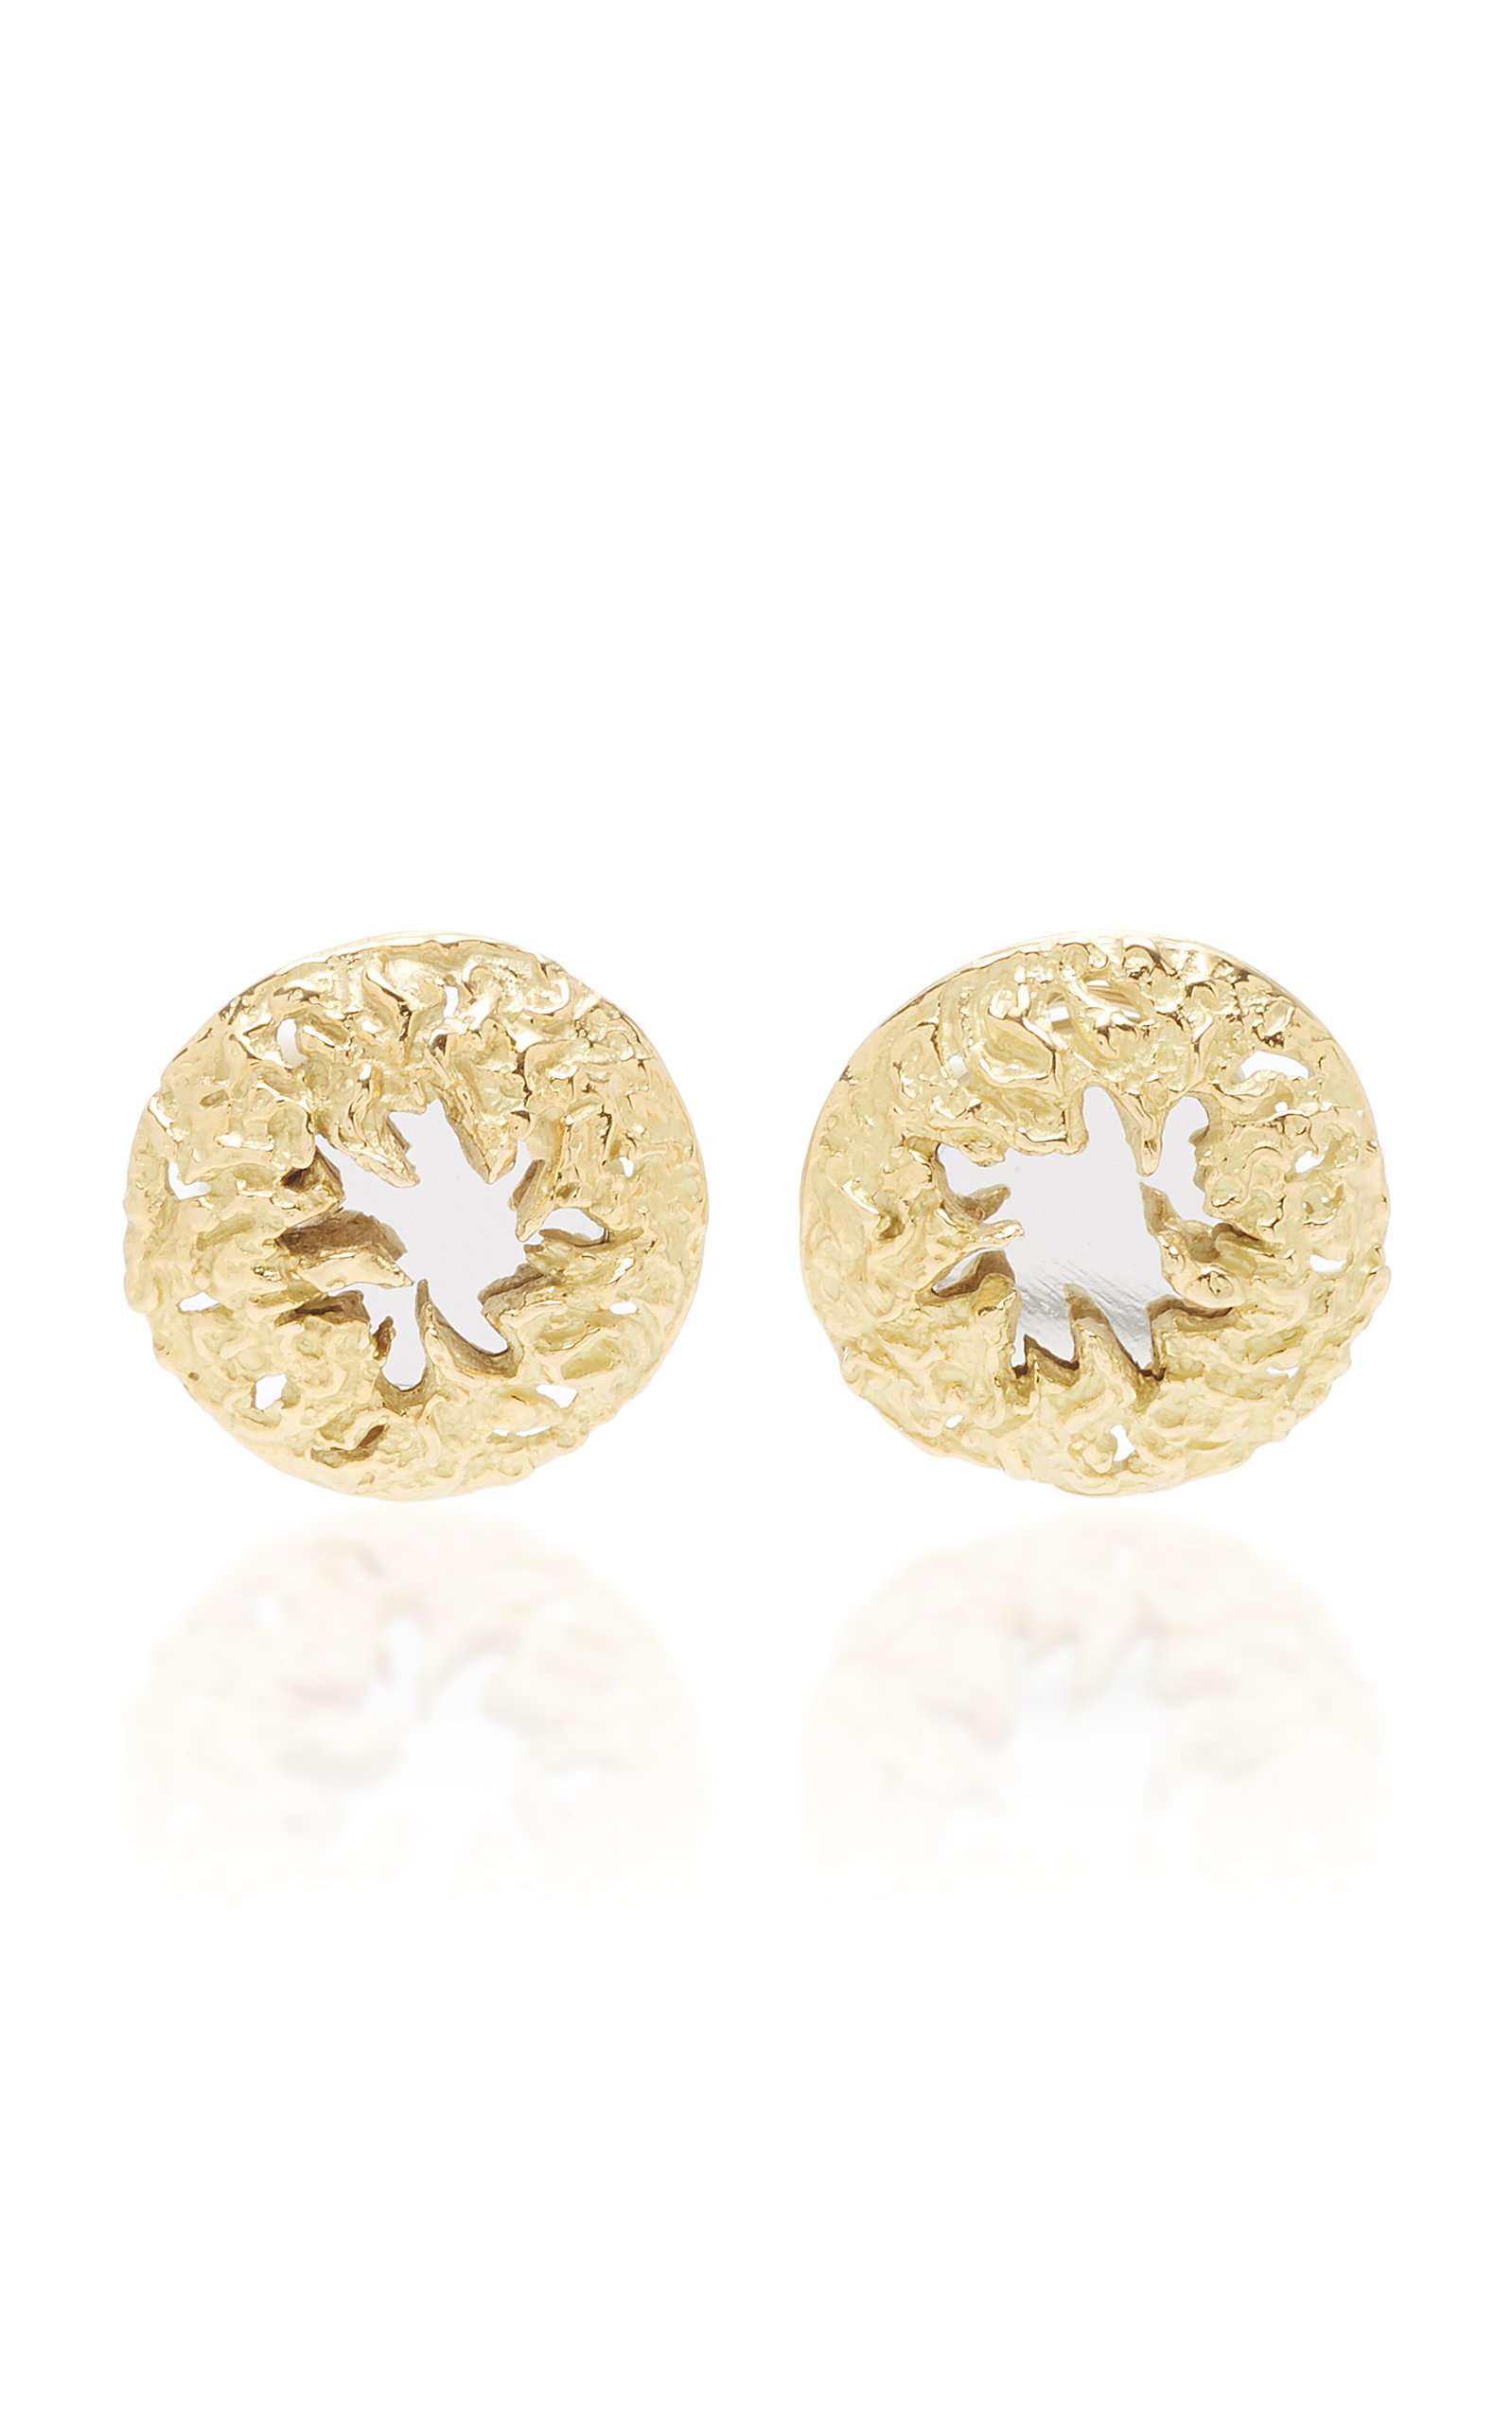 LIMITED EDITION 18K GOLD AND MIRROR CLIP EARRINGS BY CHAUMET C. 1970